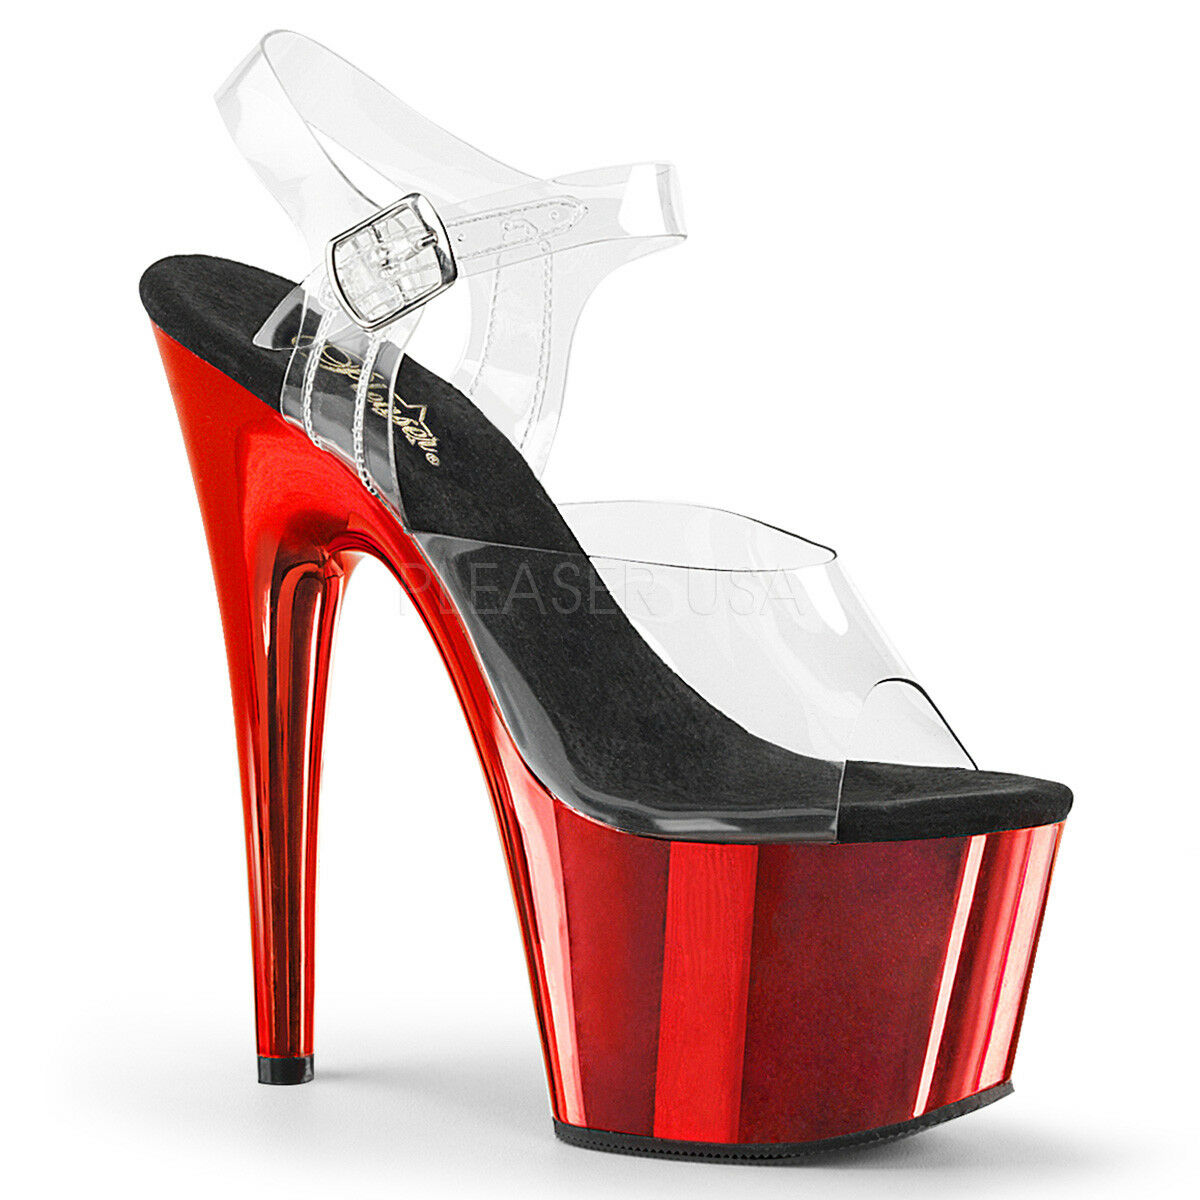 PLEASER Sexy Sexy Sexy 7  Heel rouge Chrome Platform Pole Dancer Stripper Clear femmes chaussures 32e3f9